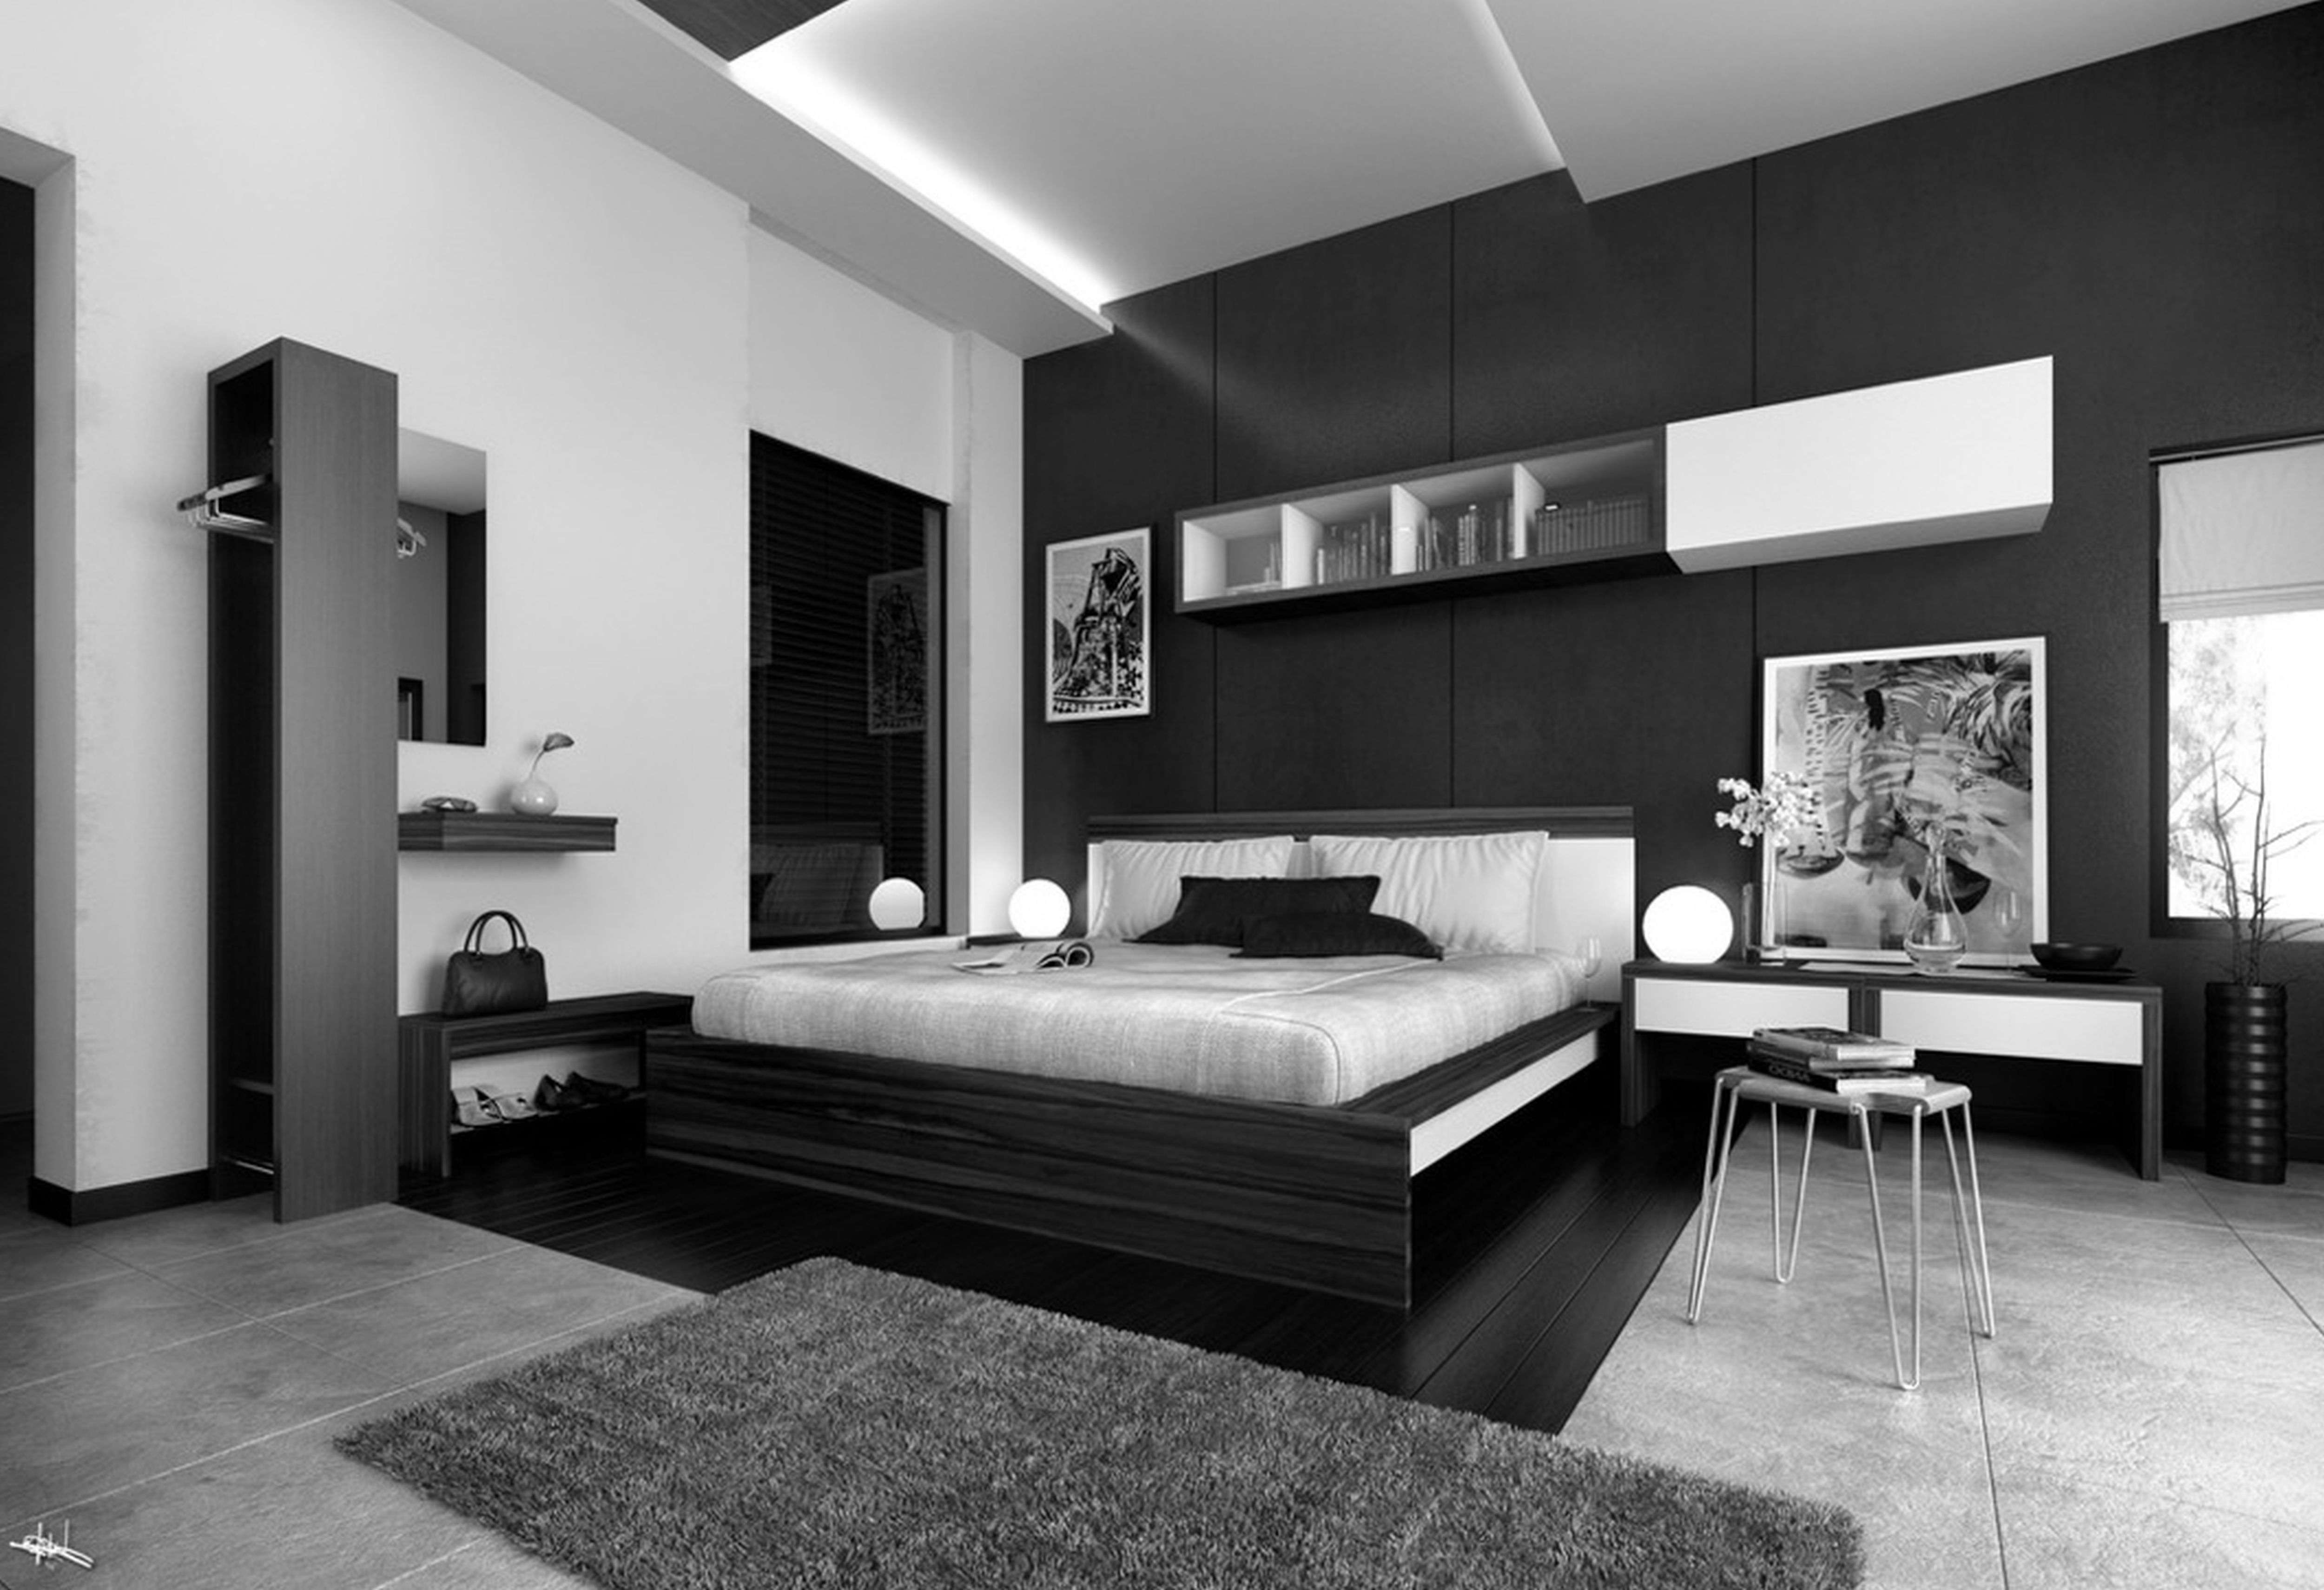 Stunning Master Bedroom Ideas With Excellent Black Master Beds As Well As White Wall Painted In Modern Bedroom Furniture Bedroom Interior Modern Bedroom Design